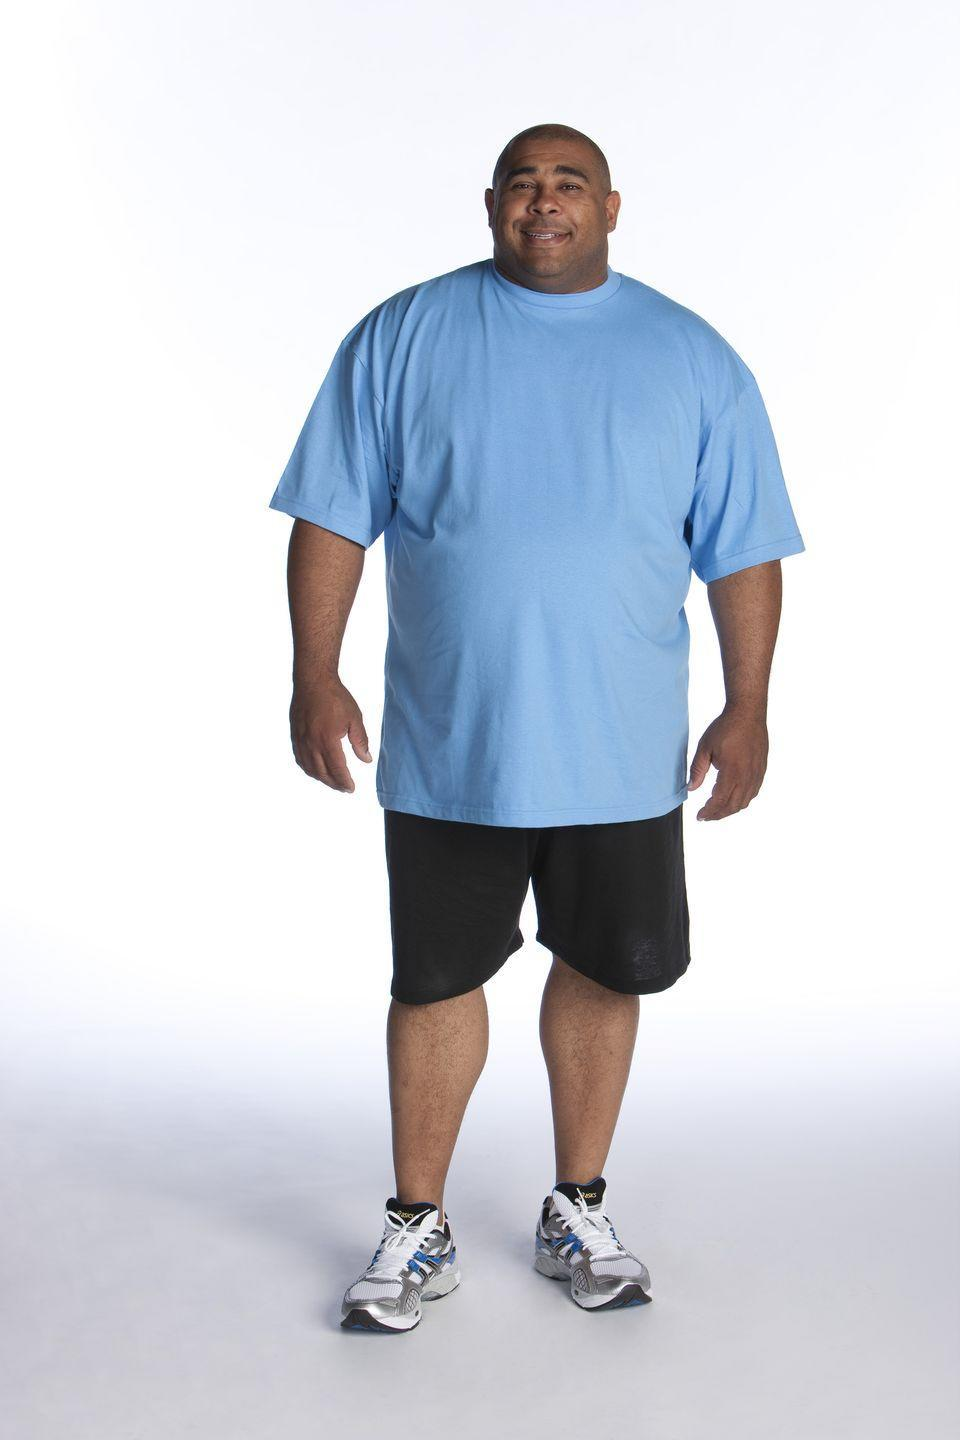 <p>Allen, who started at 325 pounds, went on the show because his weight was impacting his career as a firefighter. He also said he was worried that he wouldn't pass his next physical at work.</p>